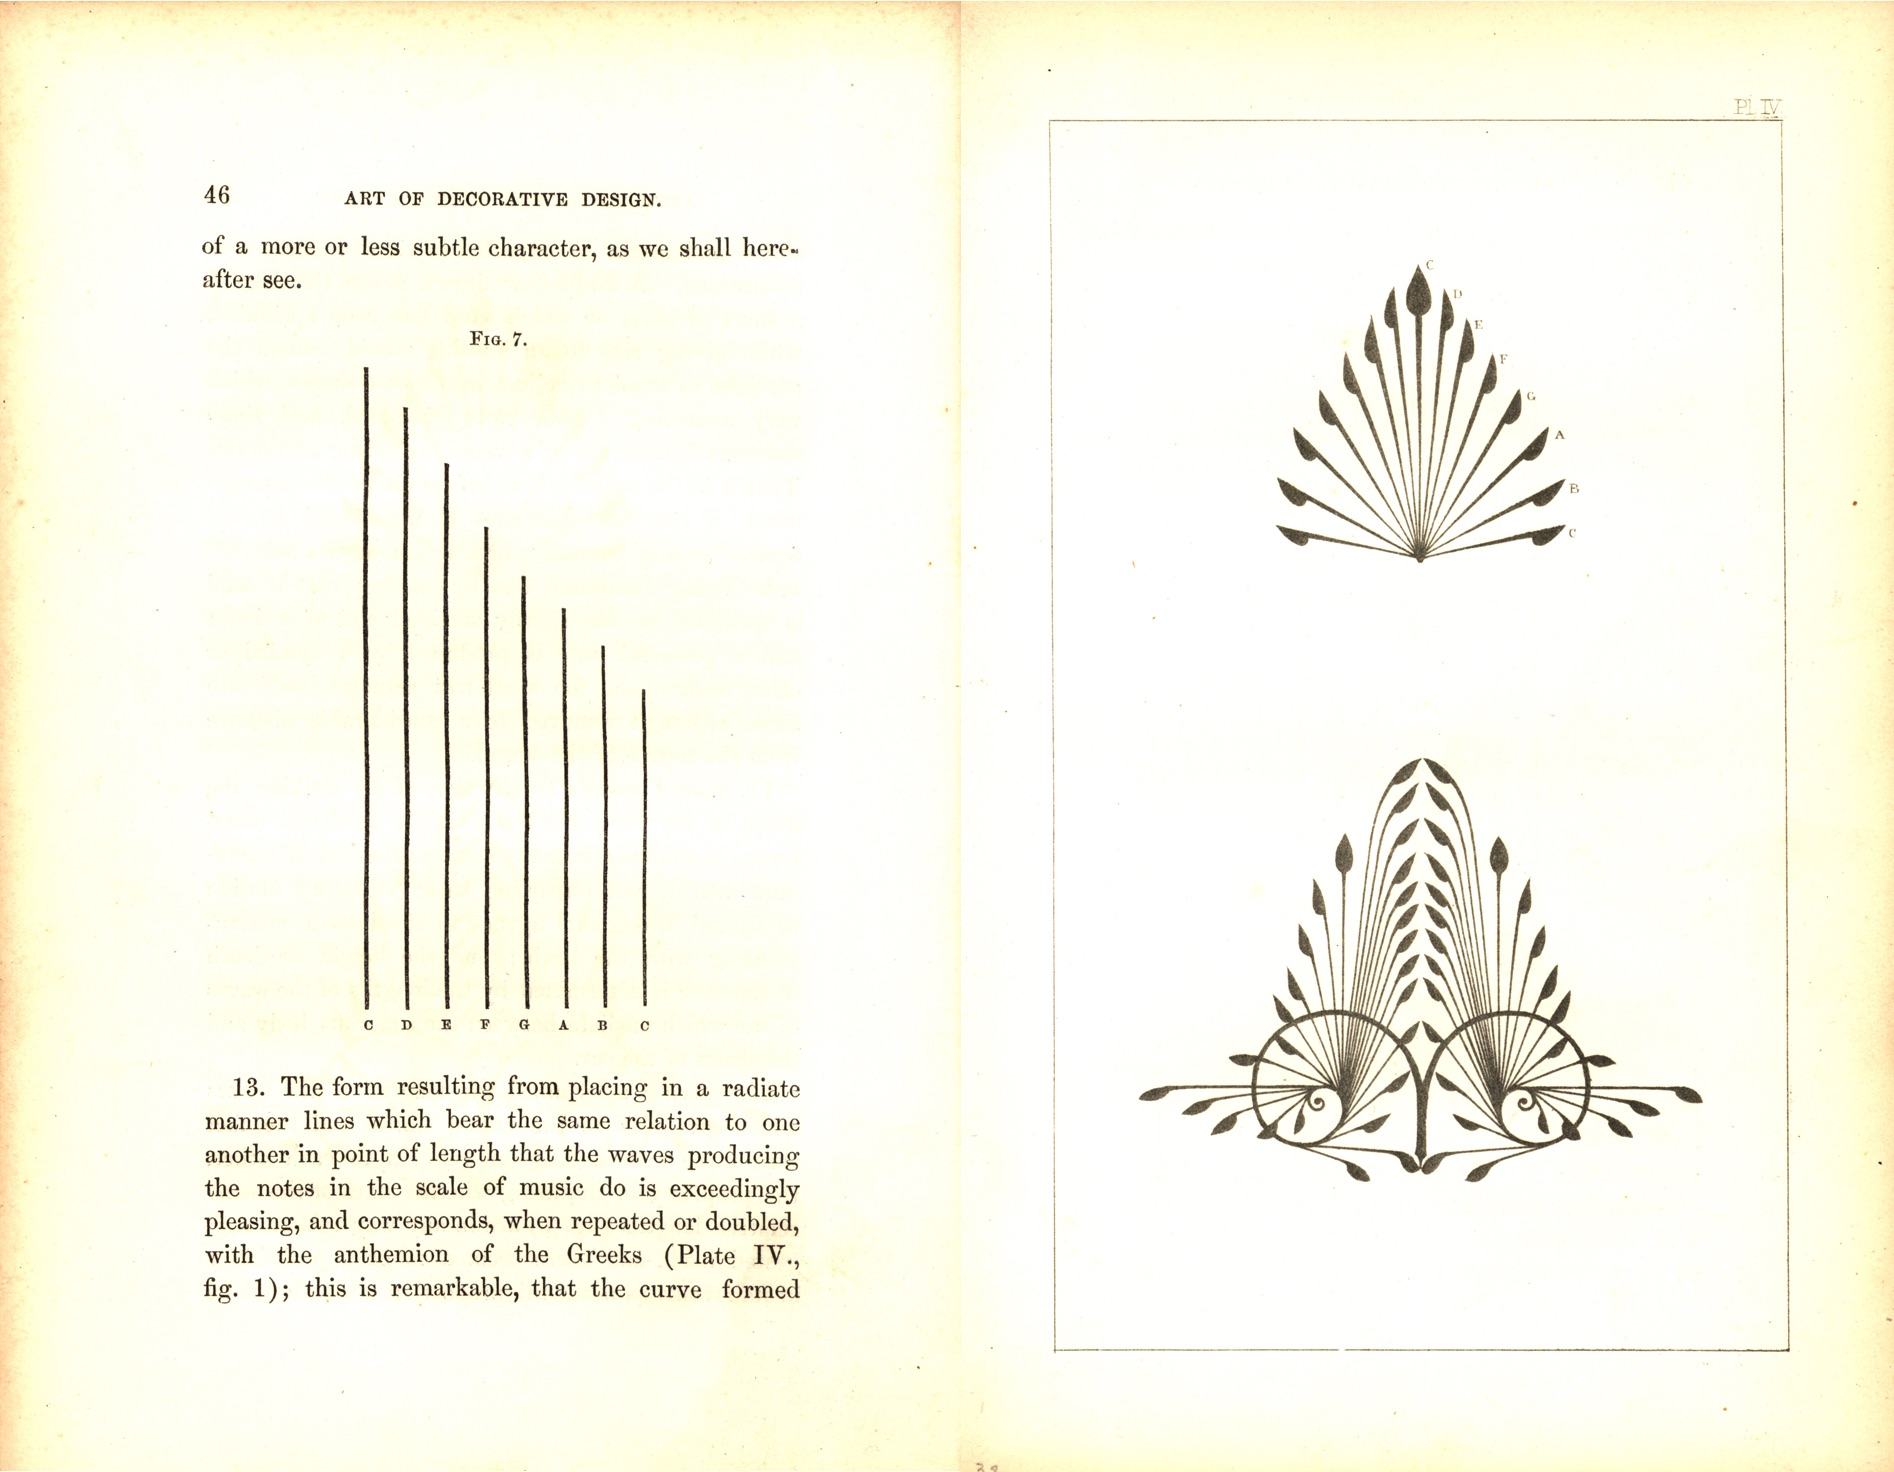 Figure 2. Dresser's illustration of the formal similarity between the musical scale and the Greek anthemion motif. From _The Art of Decorative Design_. Courtesyof the Department of Special Collections, Stanford University Libraries.